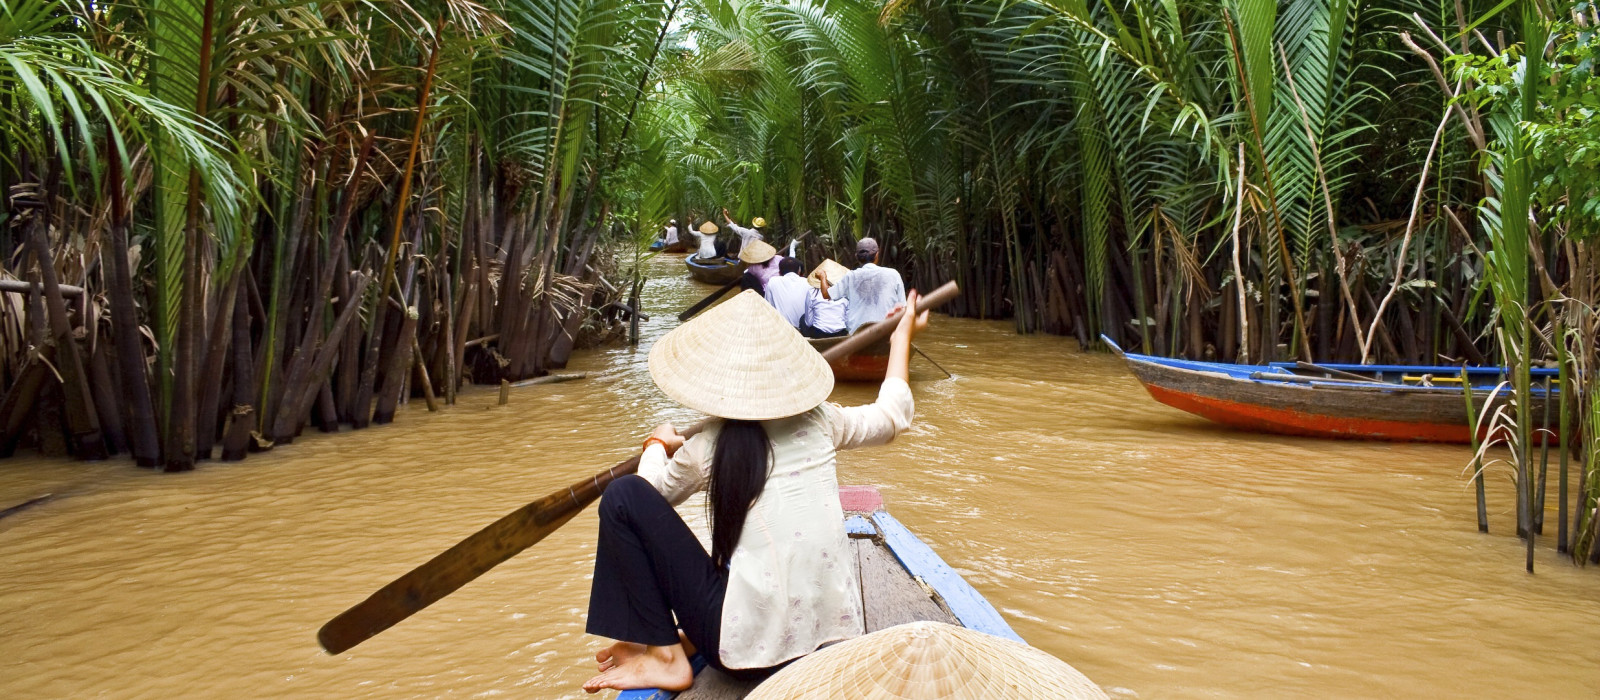 Hotel Mekong Eyes Explorer (Can Tho nach Cai Be) Vietnam